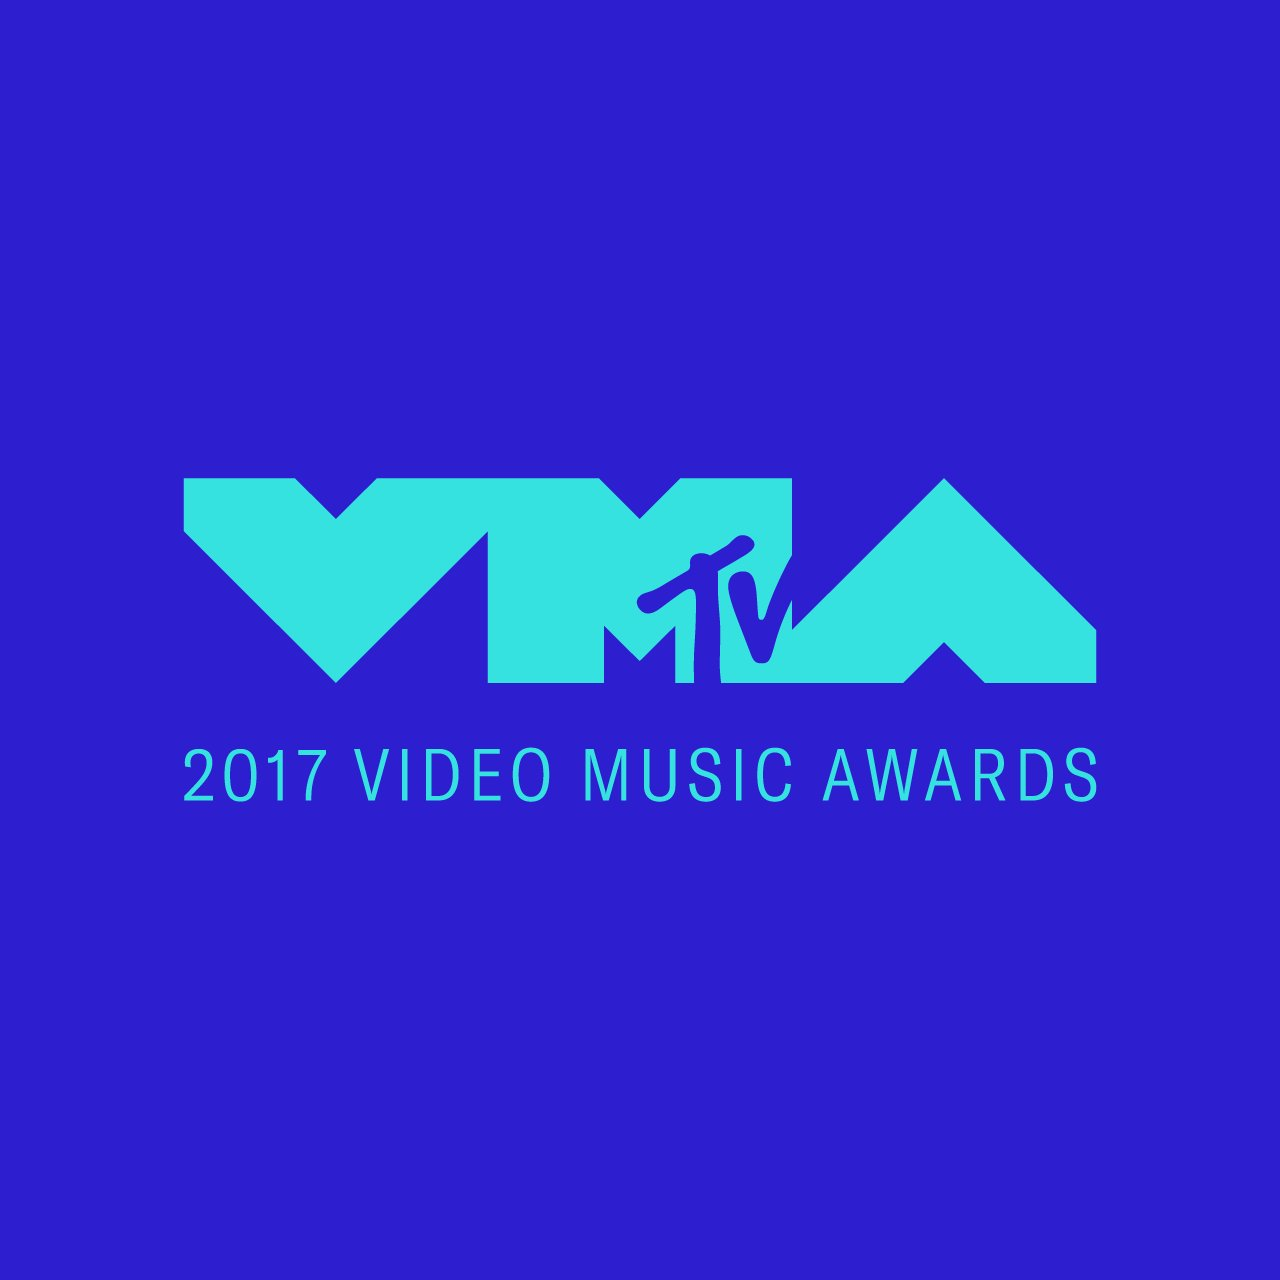 mtv_vma_2017_about-image.jpg